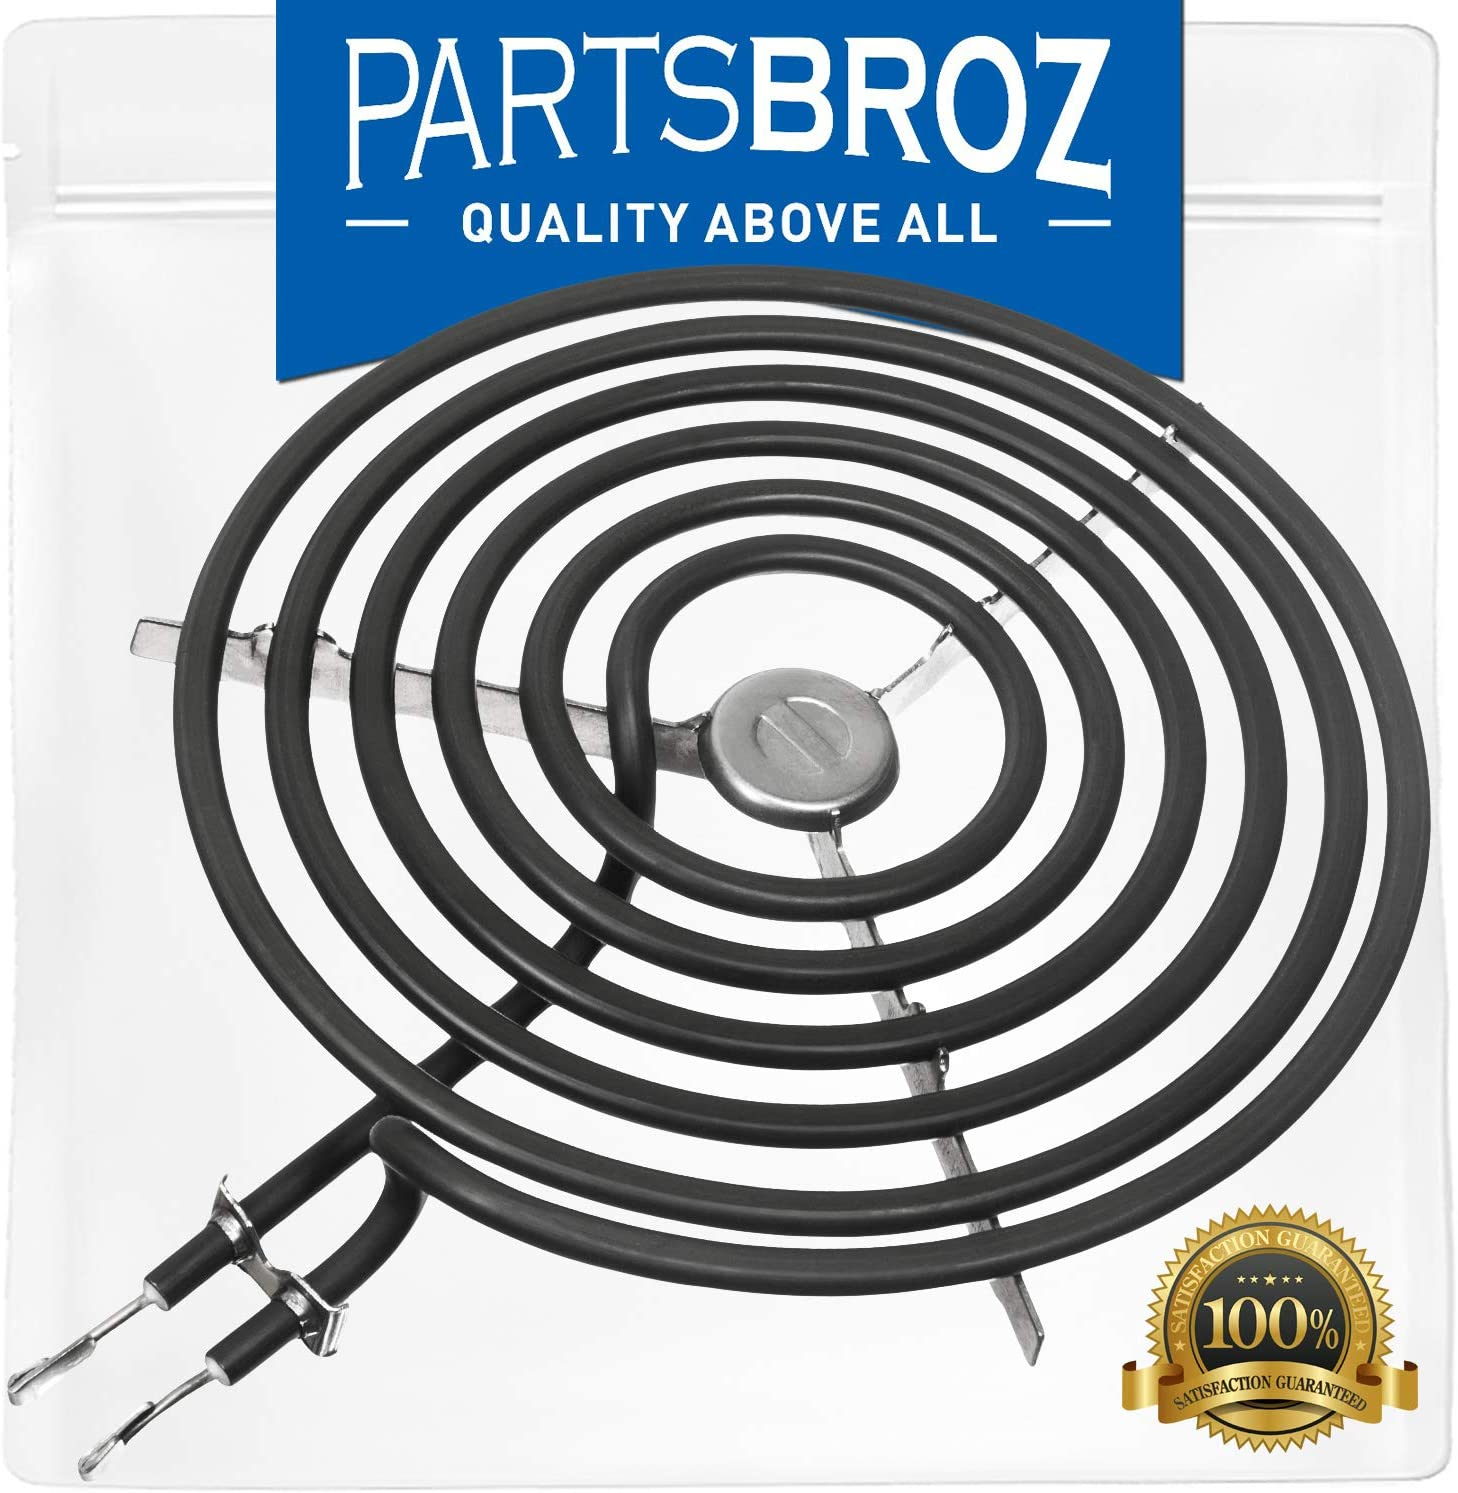 WB30M2 8-inch Surface Range Element for GE Electric Ranges by PartsBroz - Replaces AP2634728, 340524, AH243868, EA243868, PS243868, WB30K5027, WB30M0002, WB30X5072, WB30X5120, WB30X5122, WB30X5130